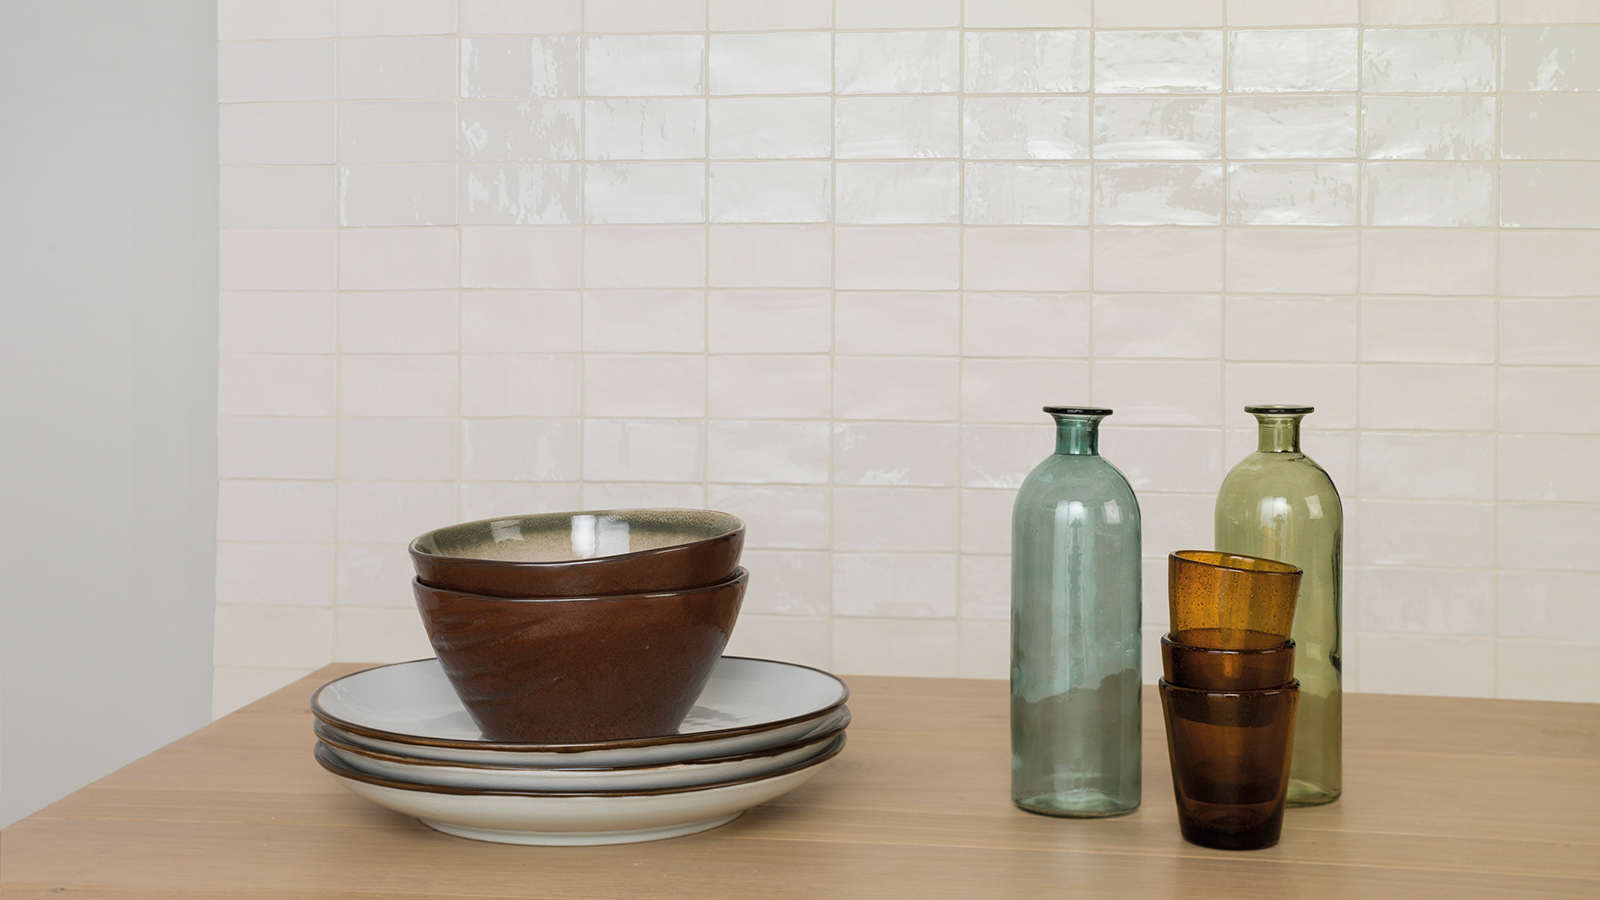 Tile matching, mix and match for walls and flooring